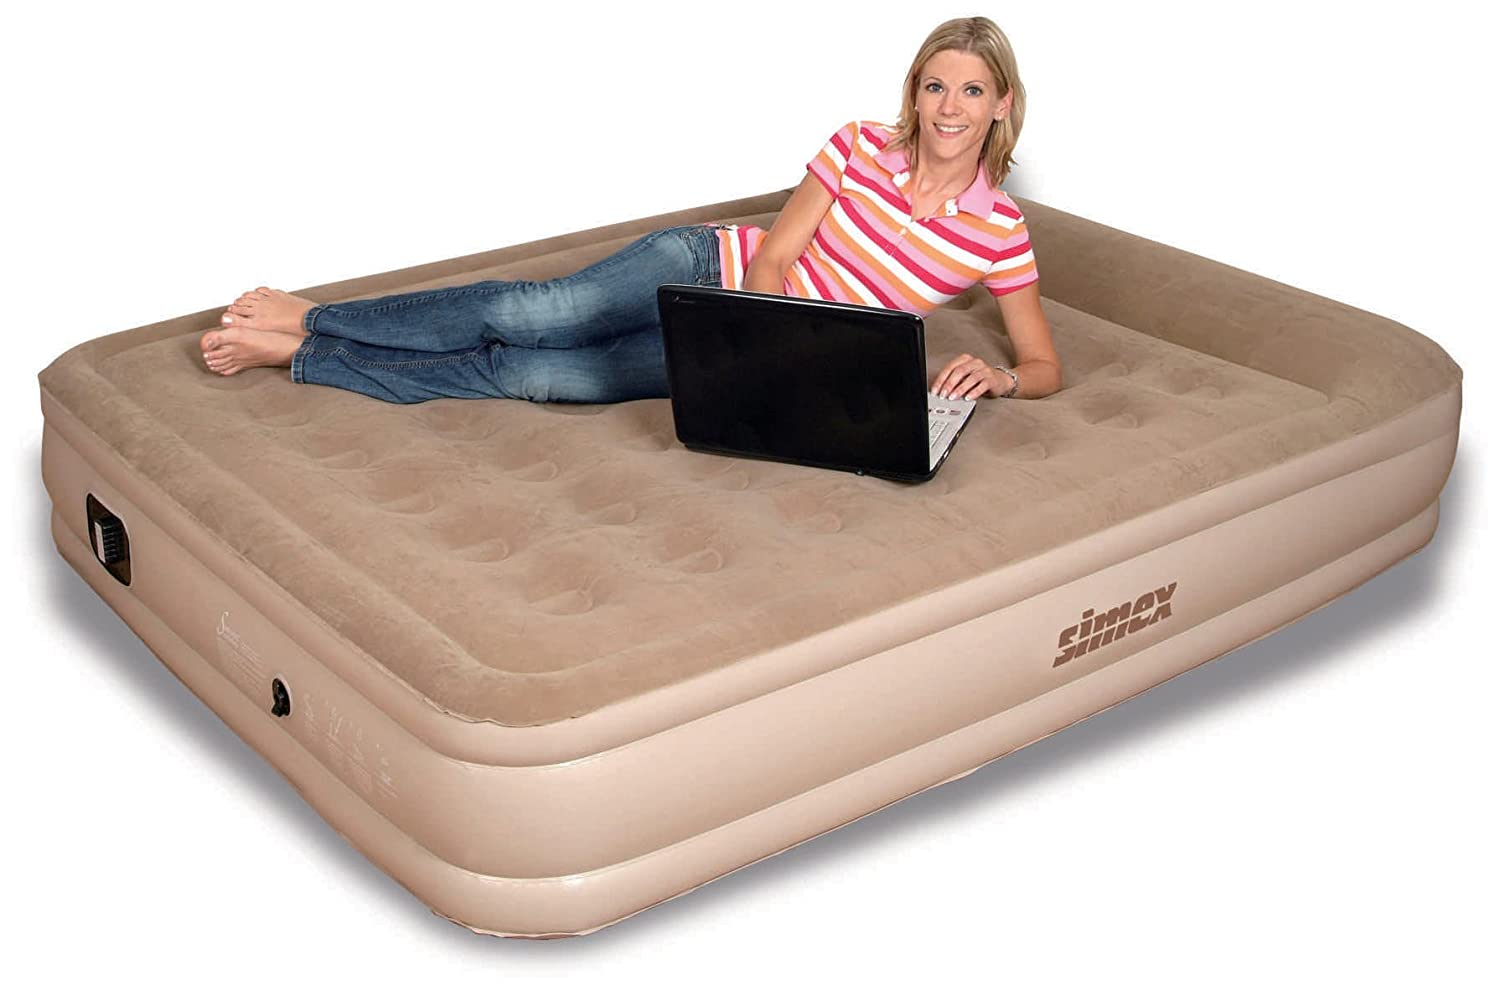 Luftbett Studioline Smooth Comfort Queen